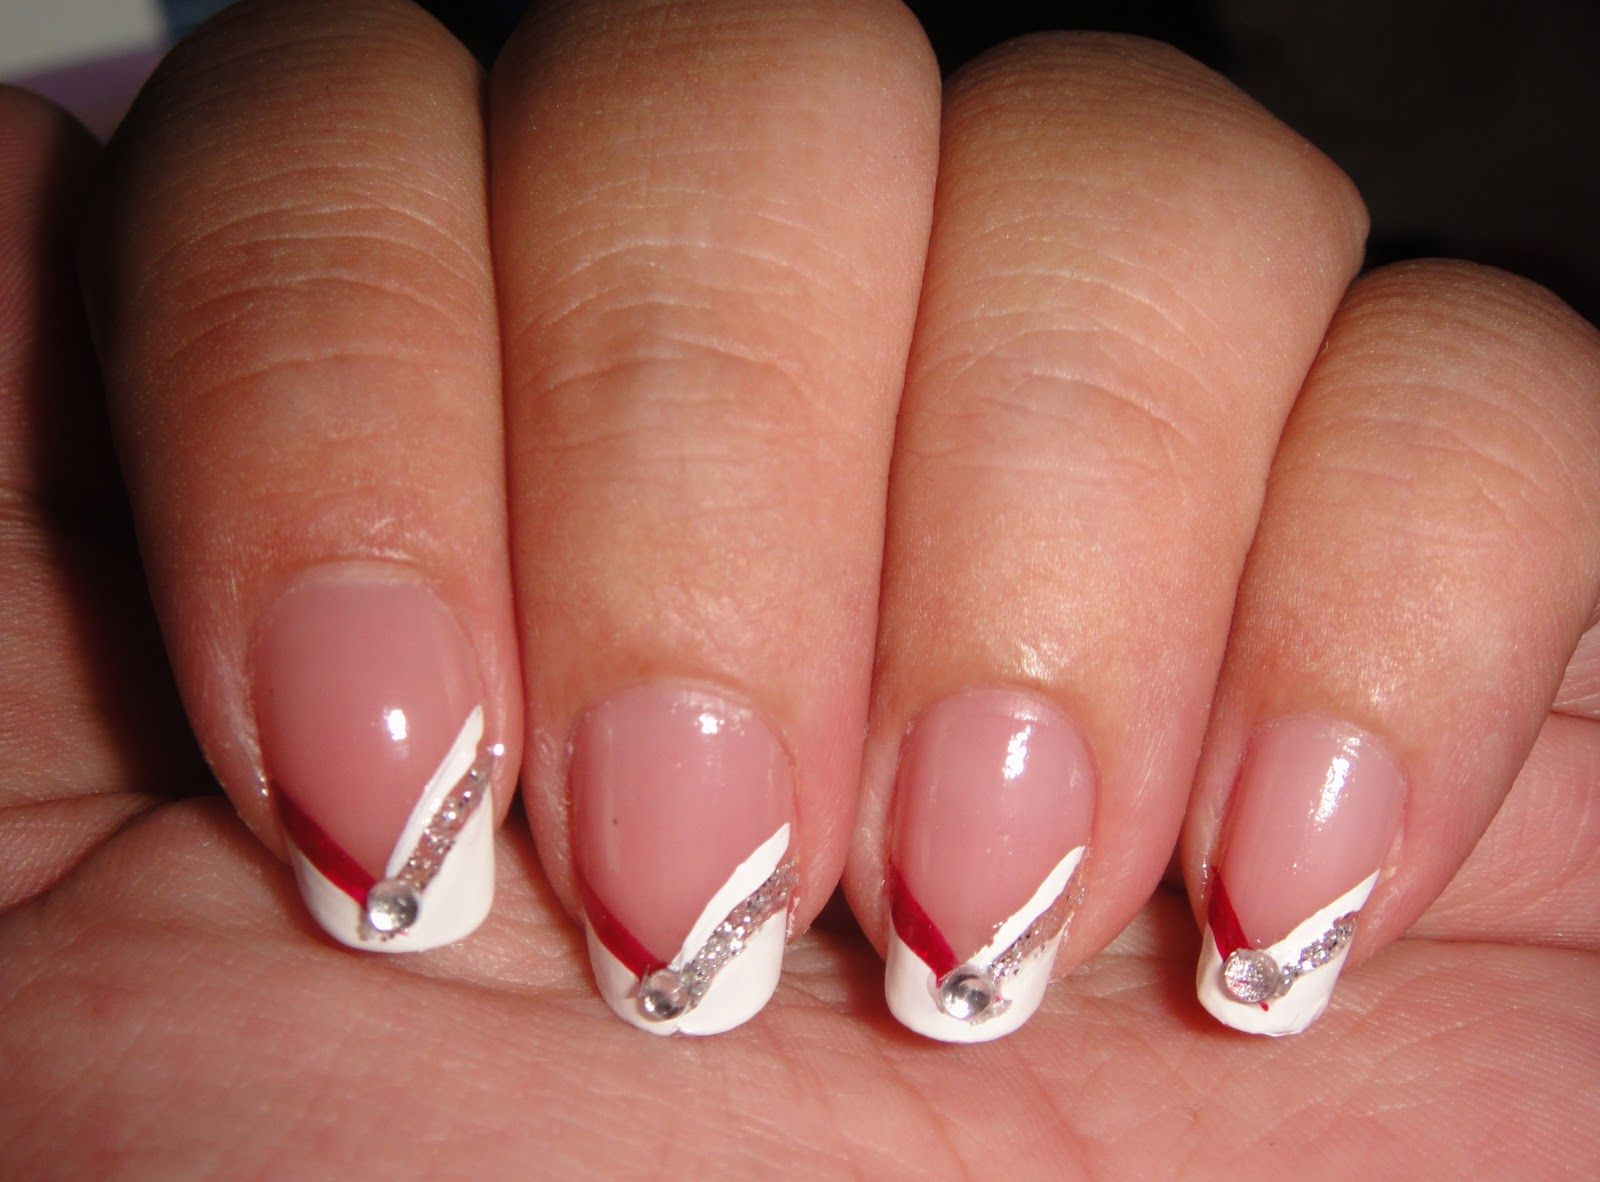 red and white french manicure ideas | manicure | pinterest